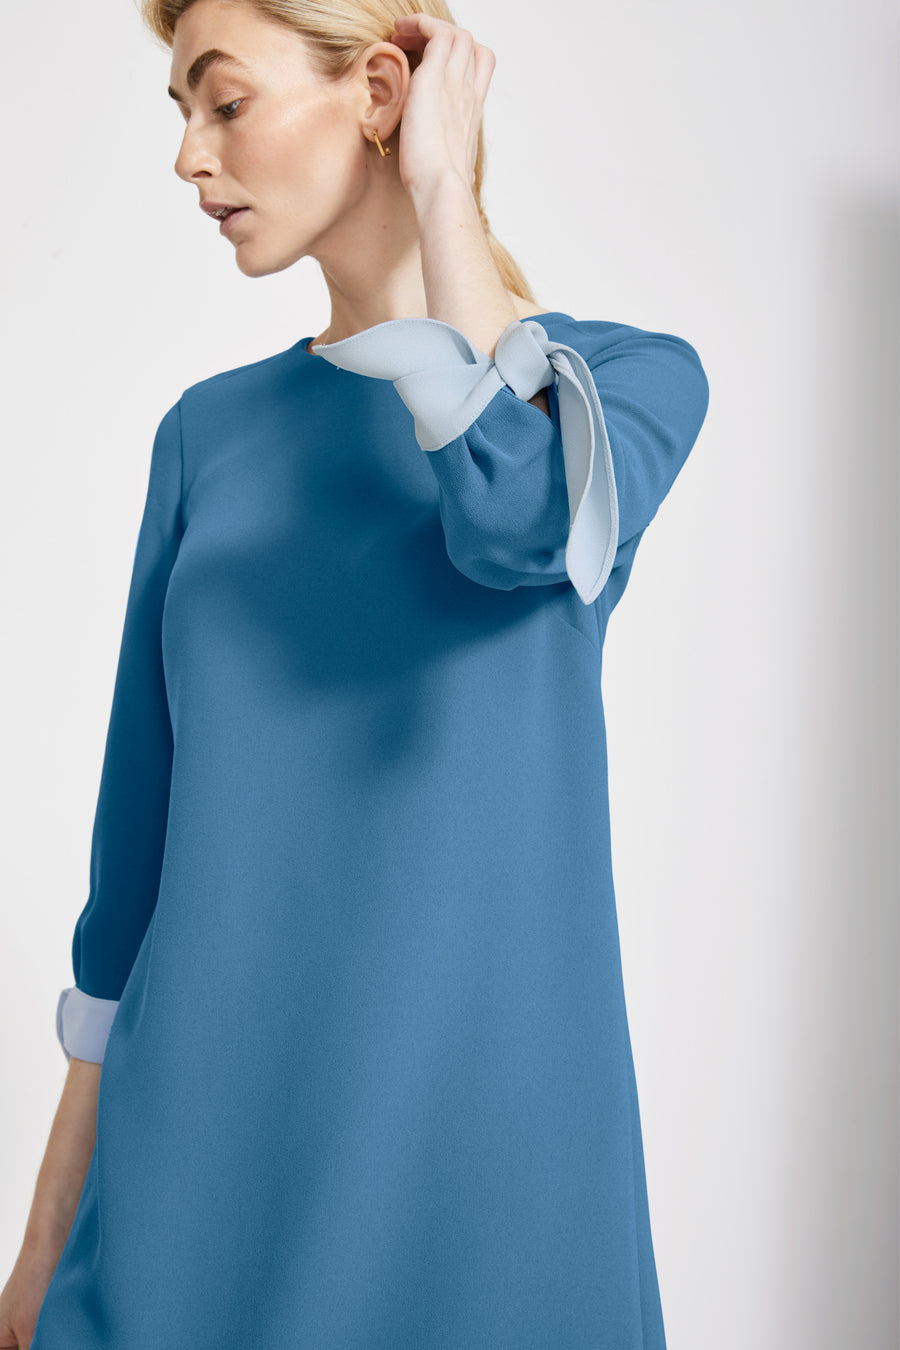 Padstow Turner Blue Dress